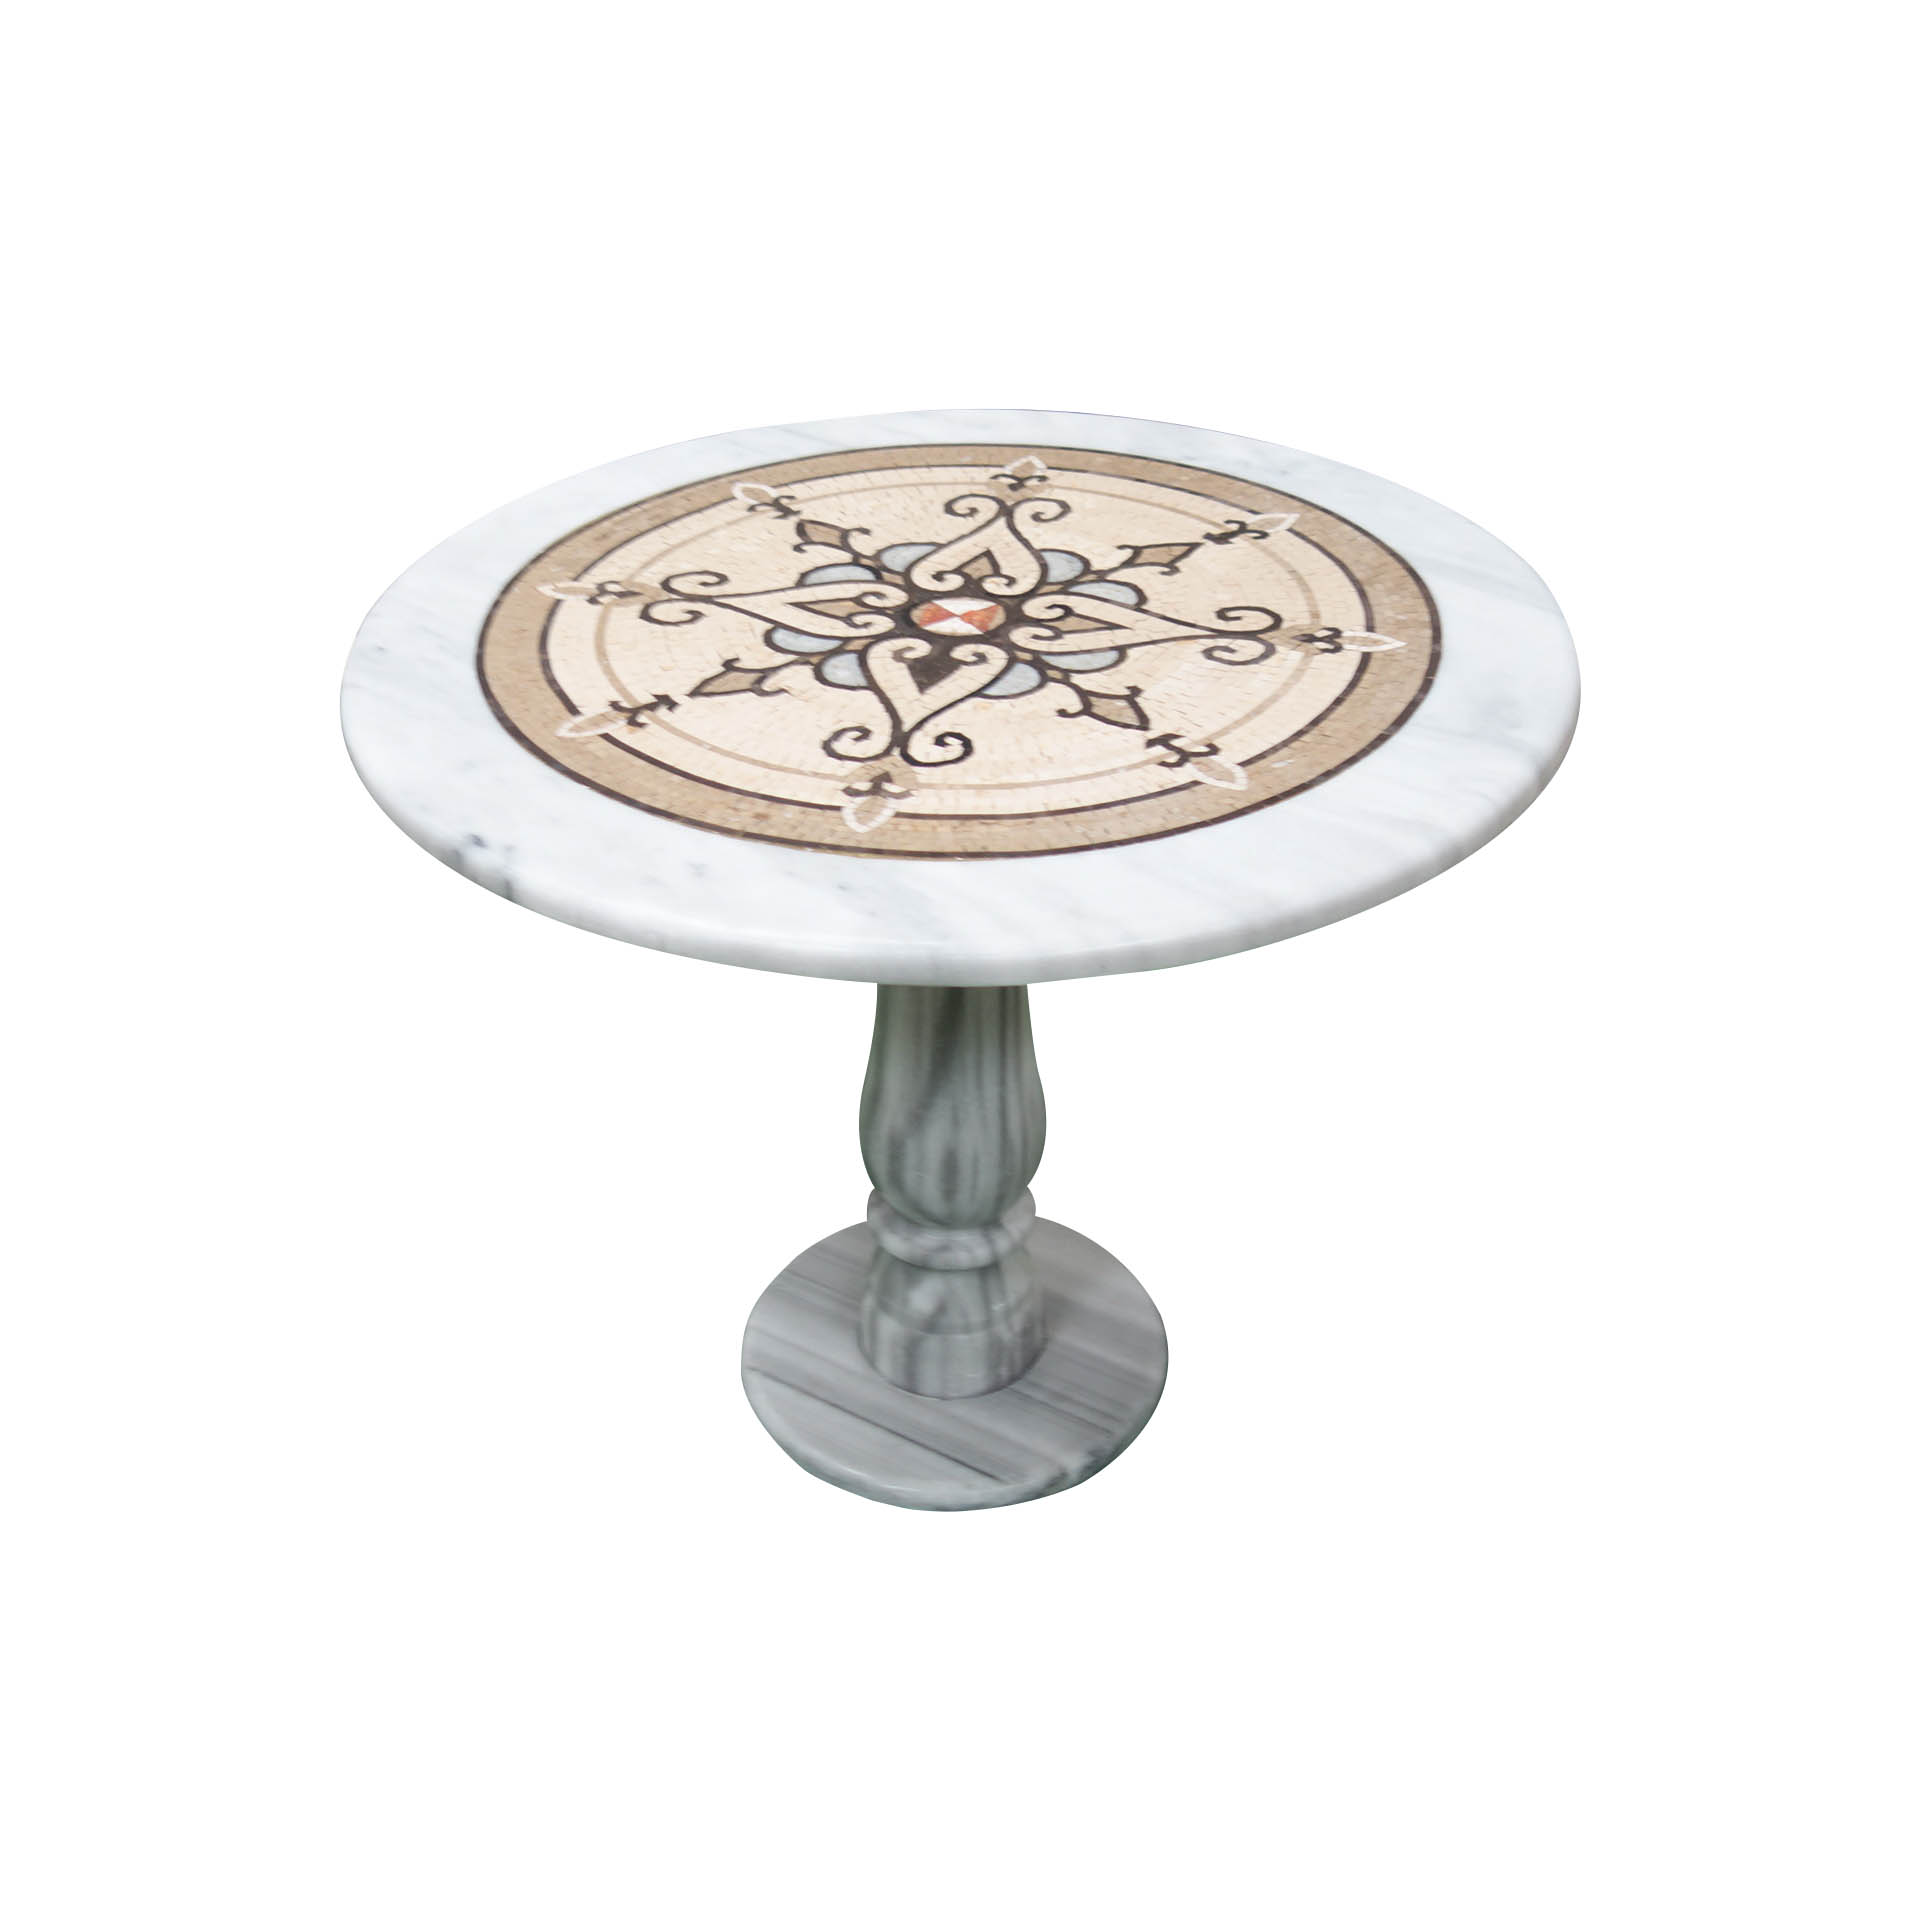 Spicate flourished marble mosaic circular table TA-009